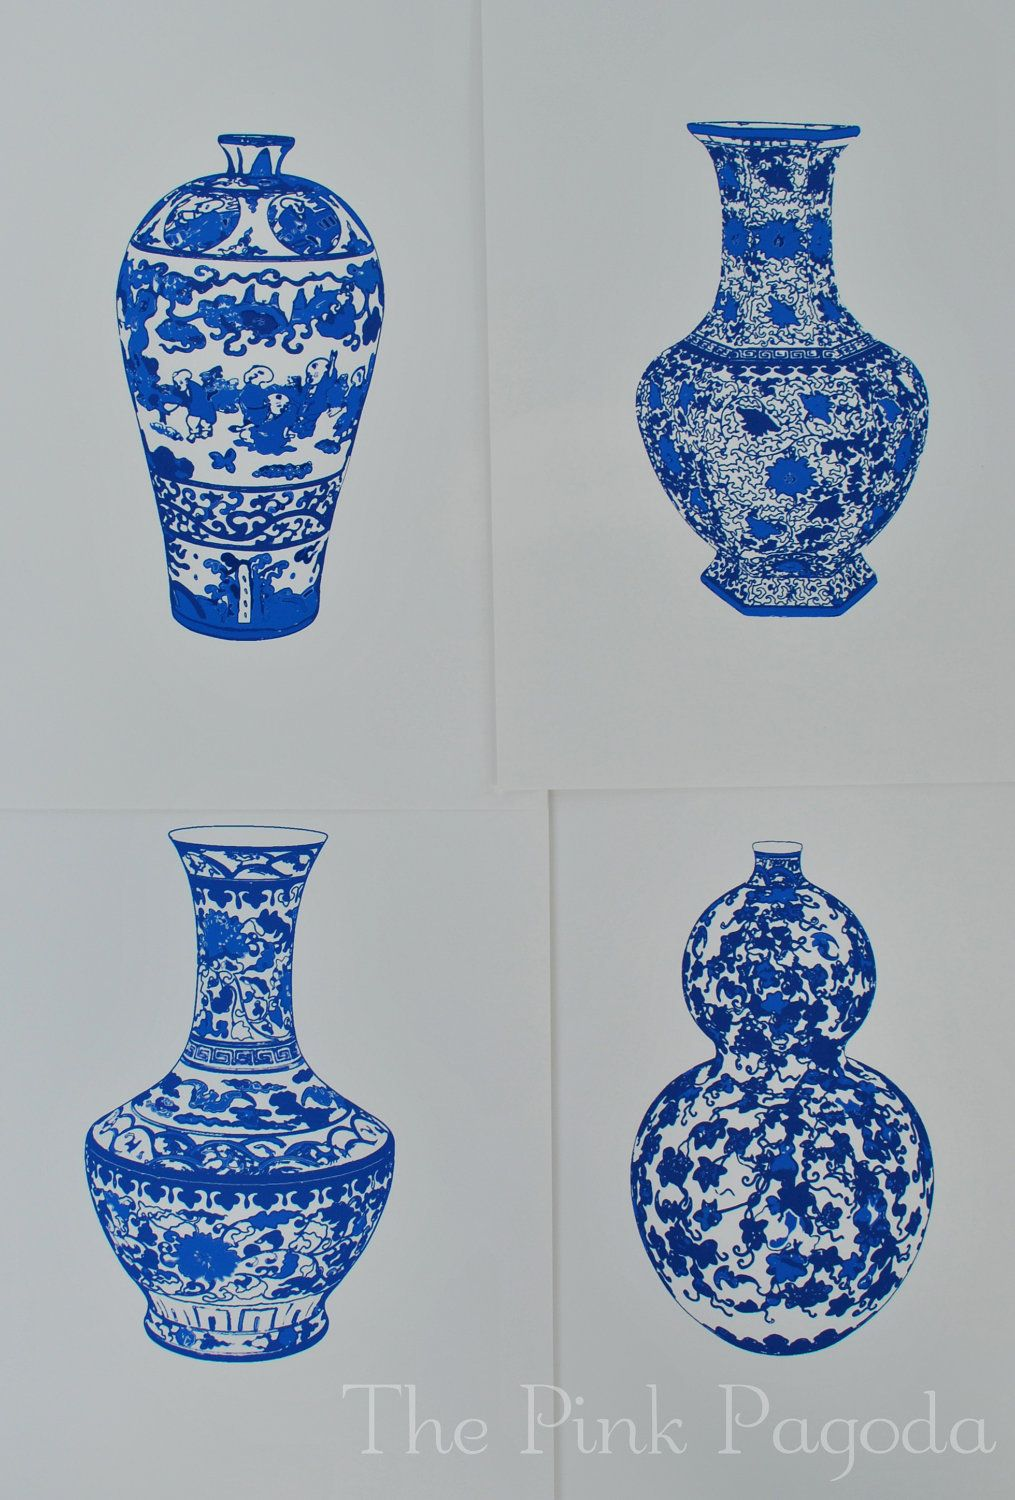 Blue And White Chinese Vase 3 13x19 Giclee 45 00 Via Etsy Chinese Vase Blue And White Blue And White China Blue and white vases cheap